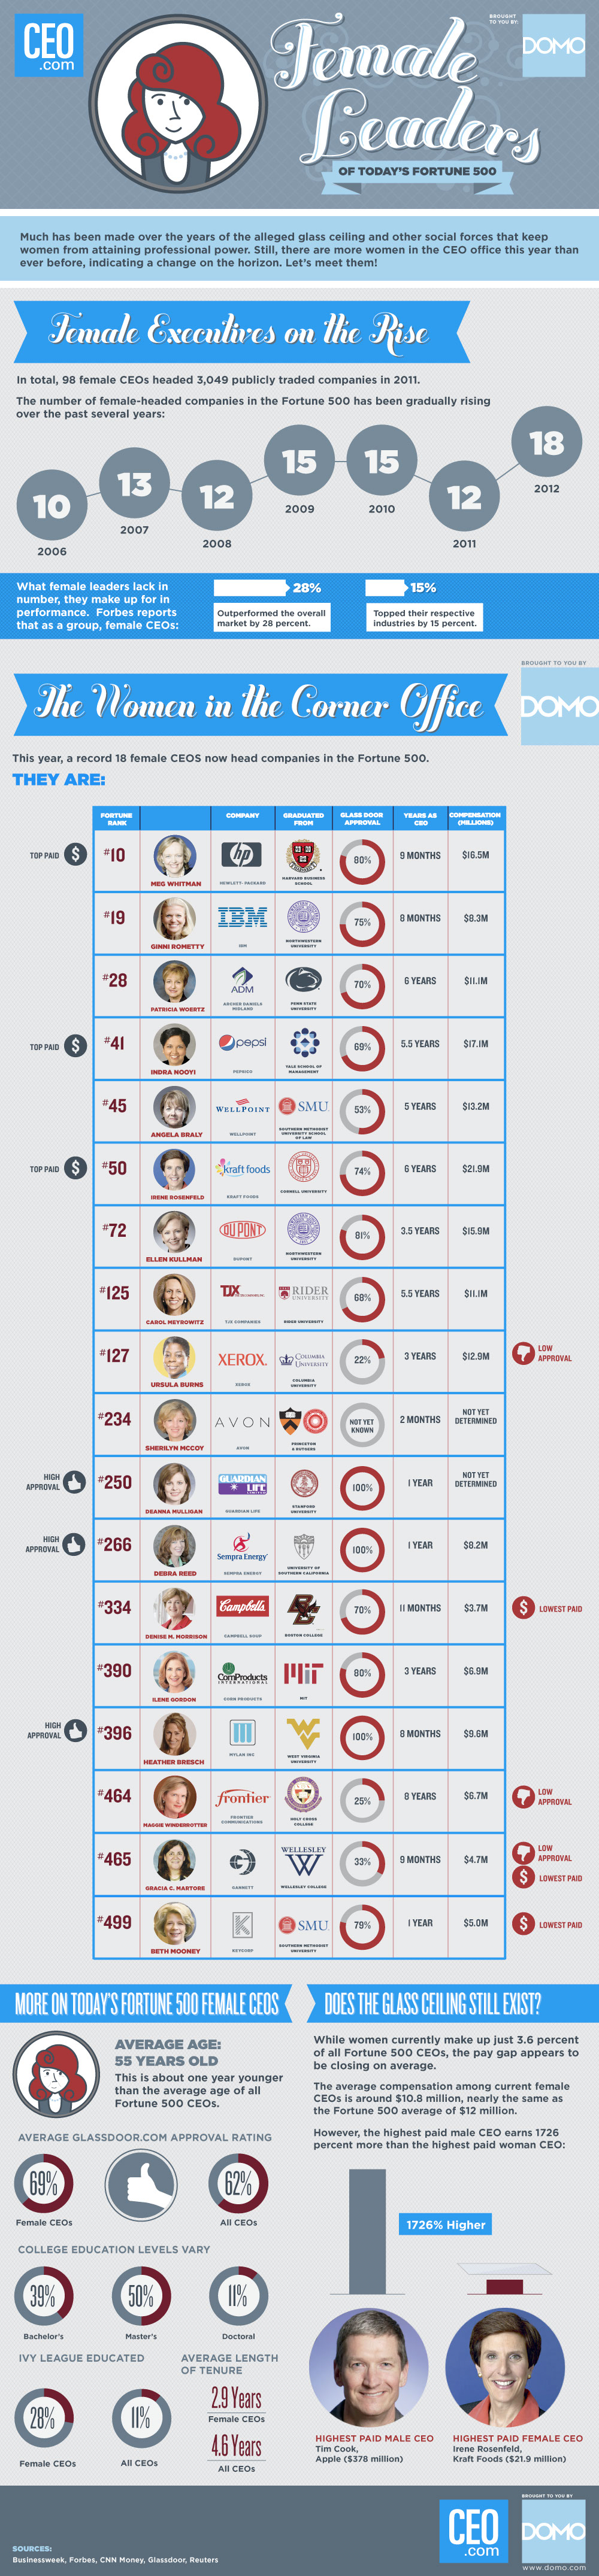 Female-Leaders-Of-The-Fortune-500-infographic